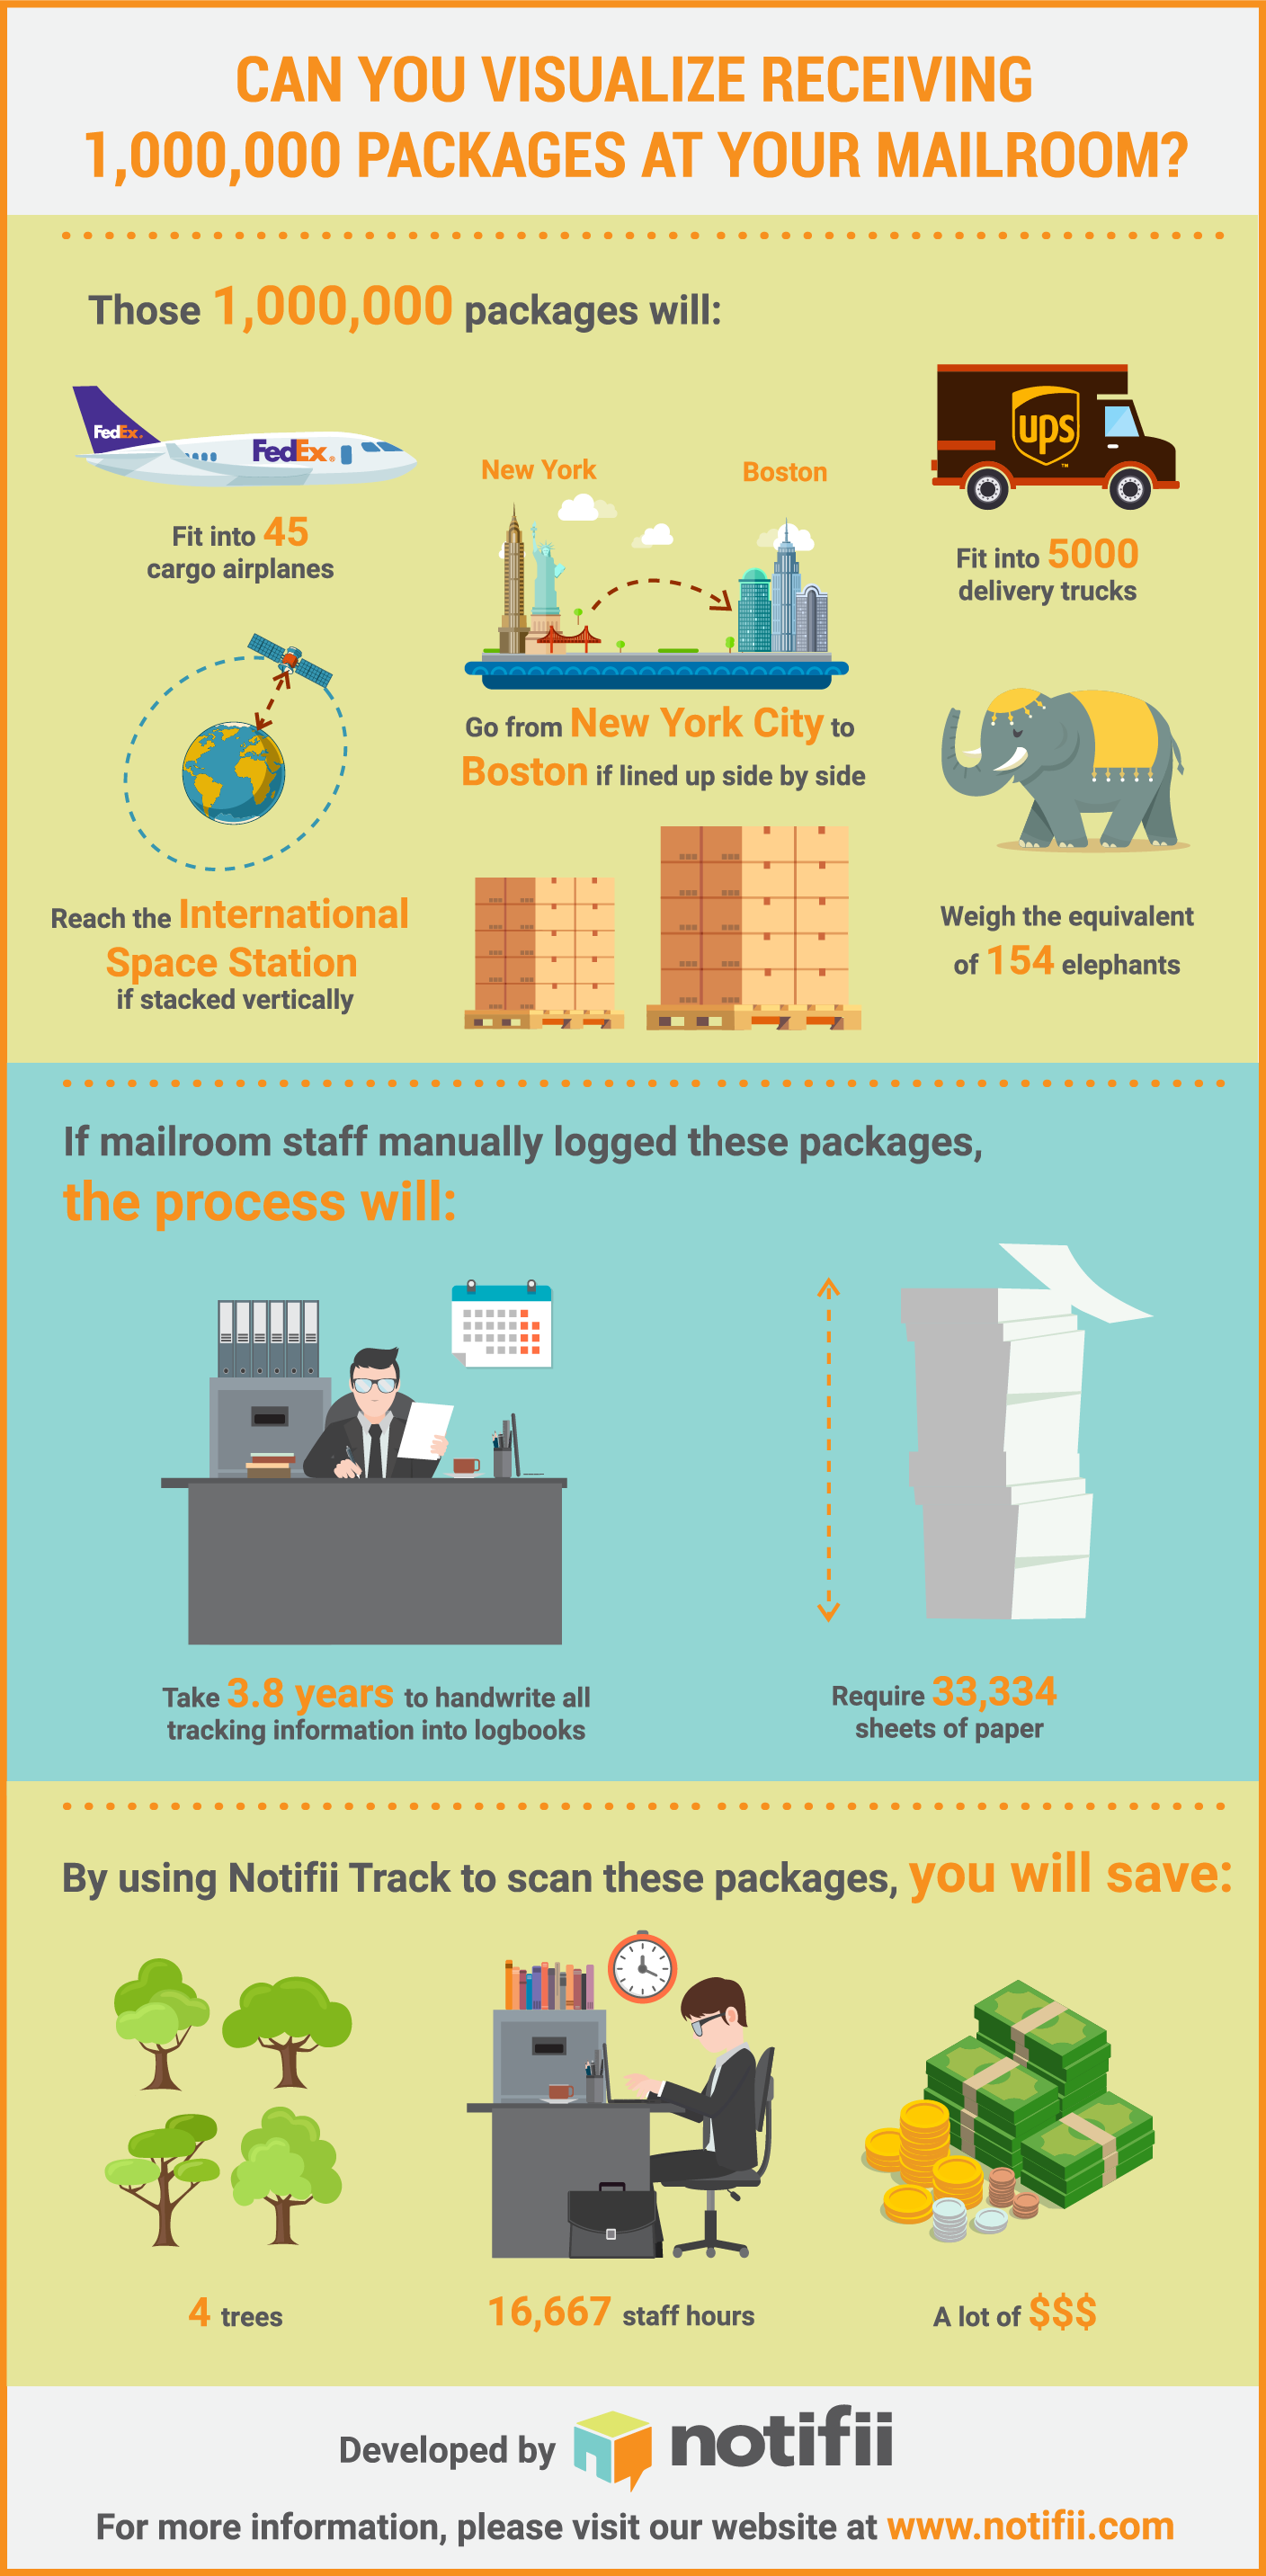 one million packages logged into Notifii Track